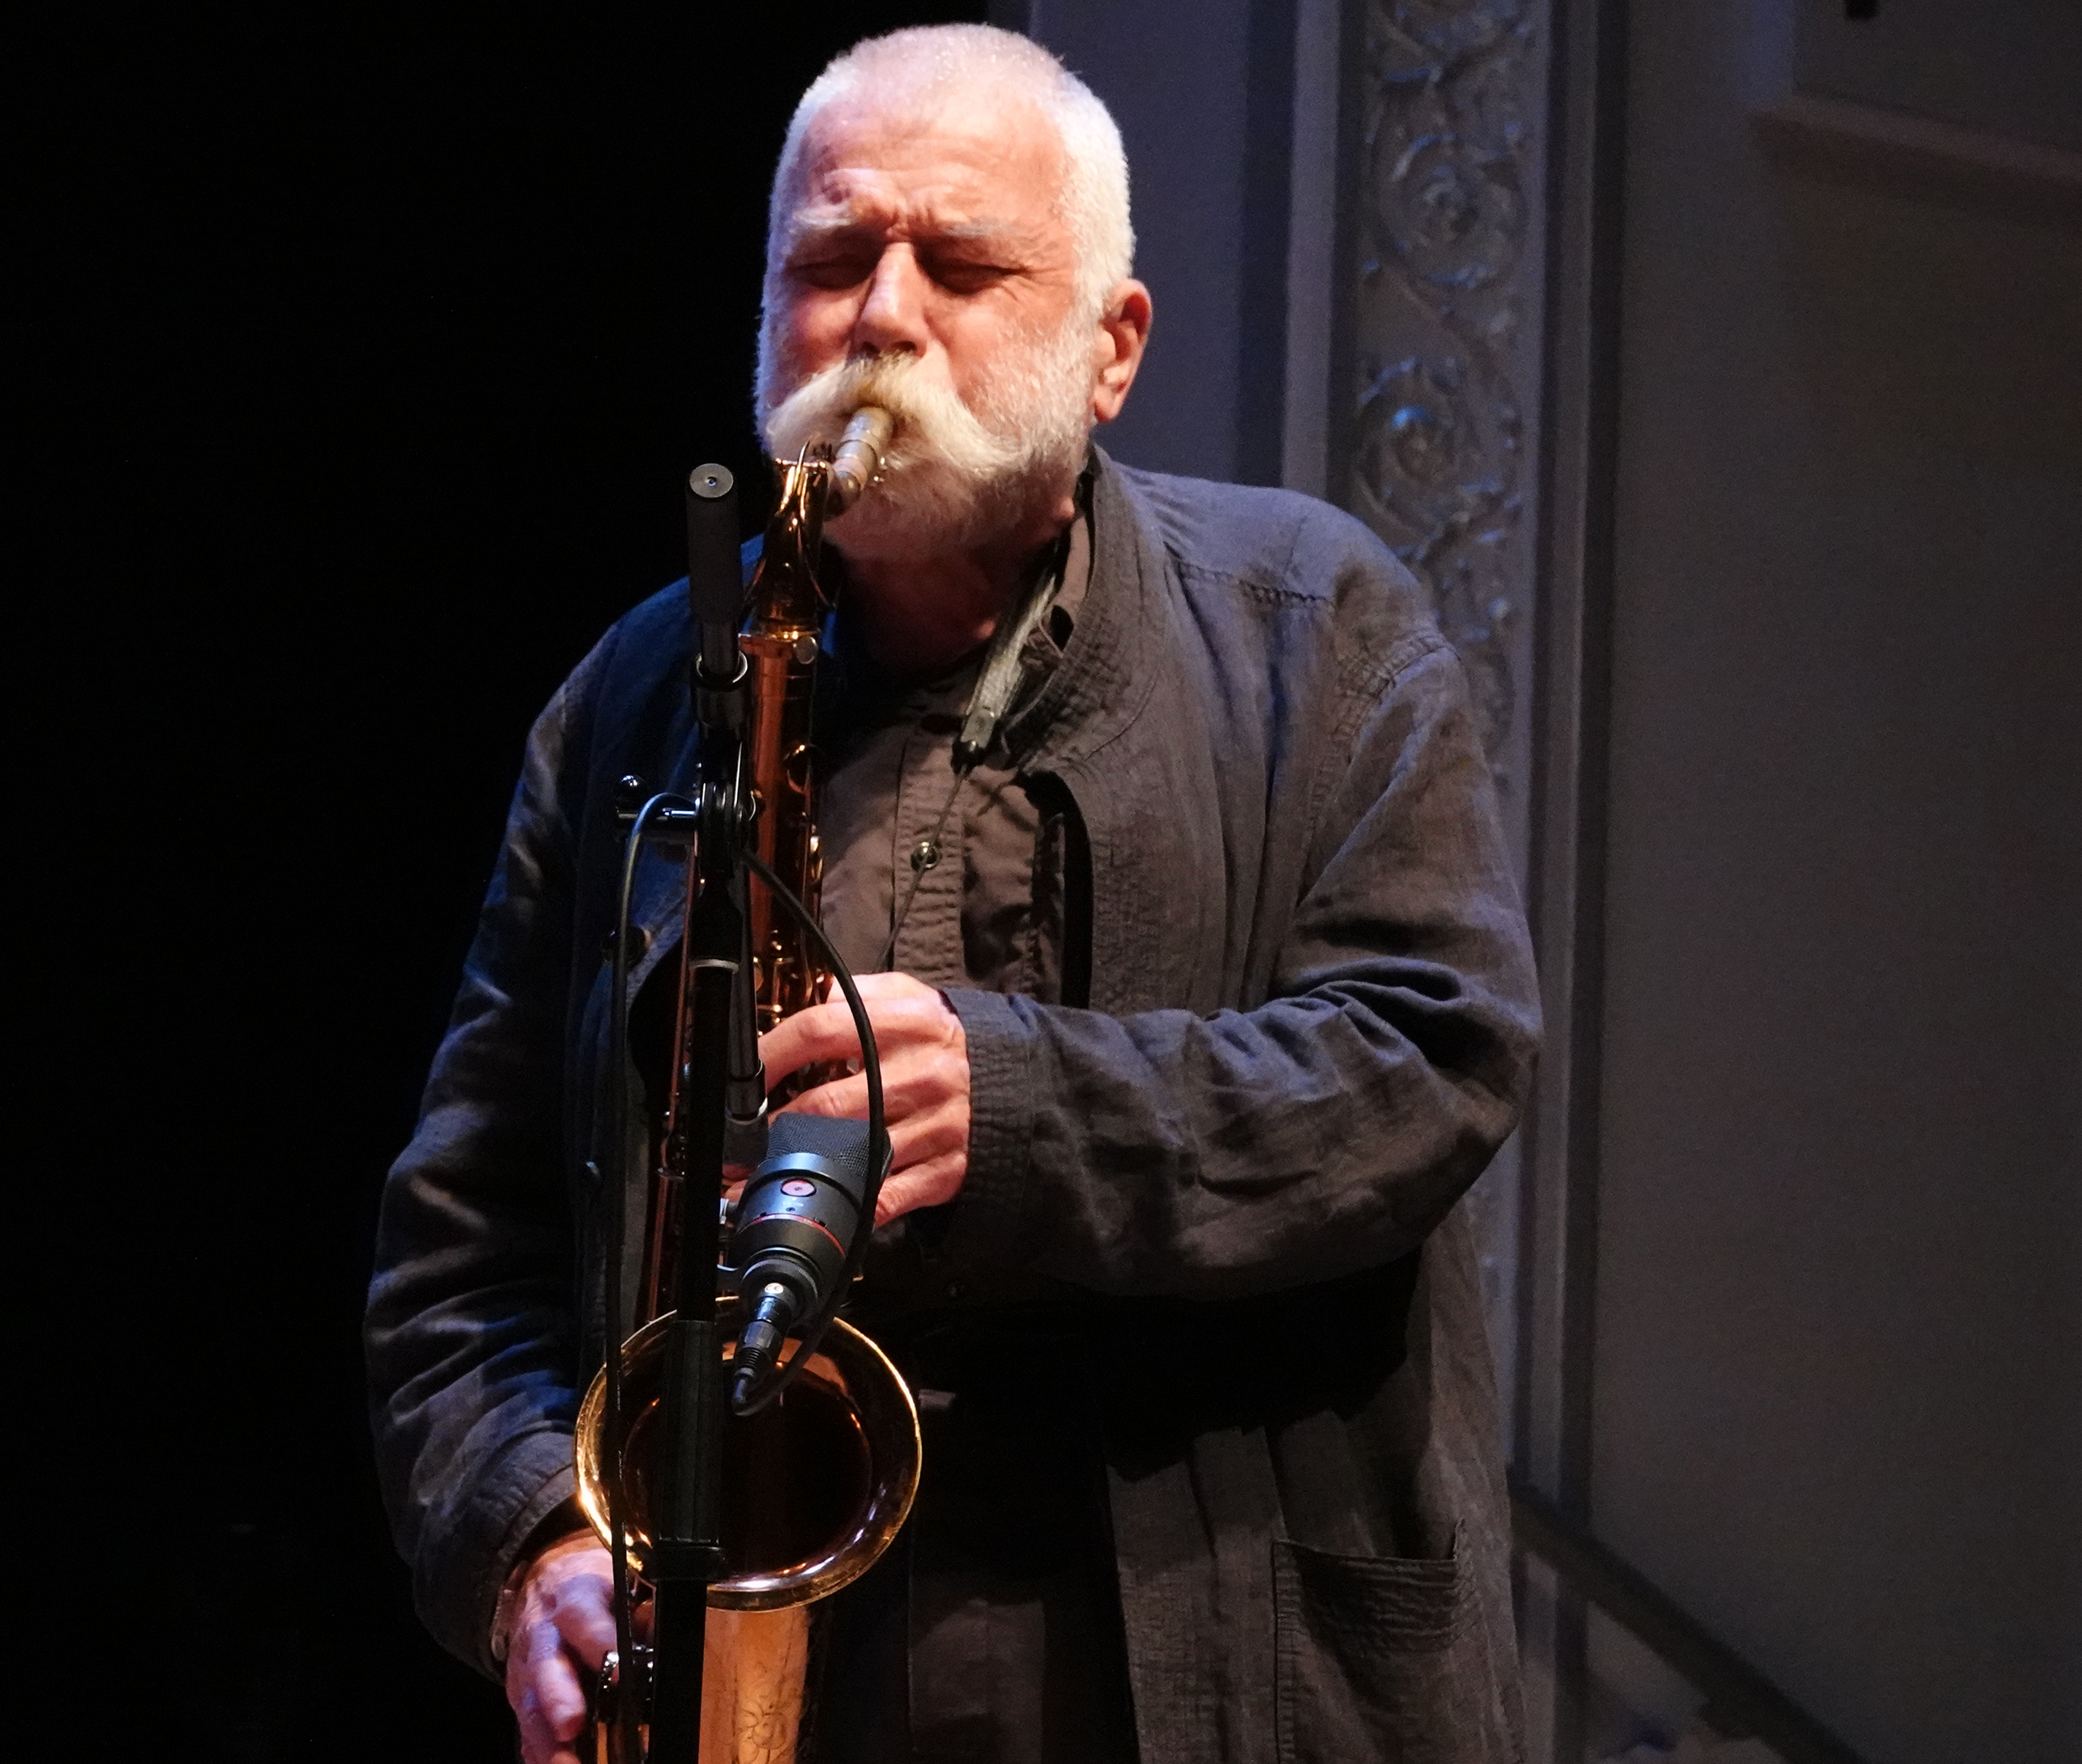 Peter Brotzmann at 24th Annual Vision Festival